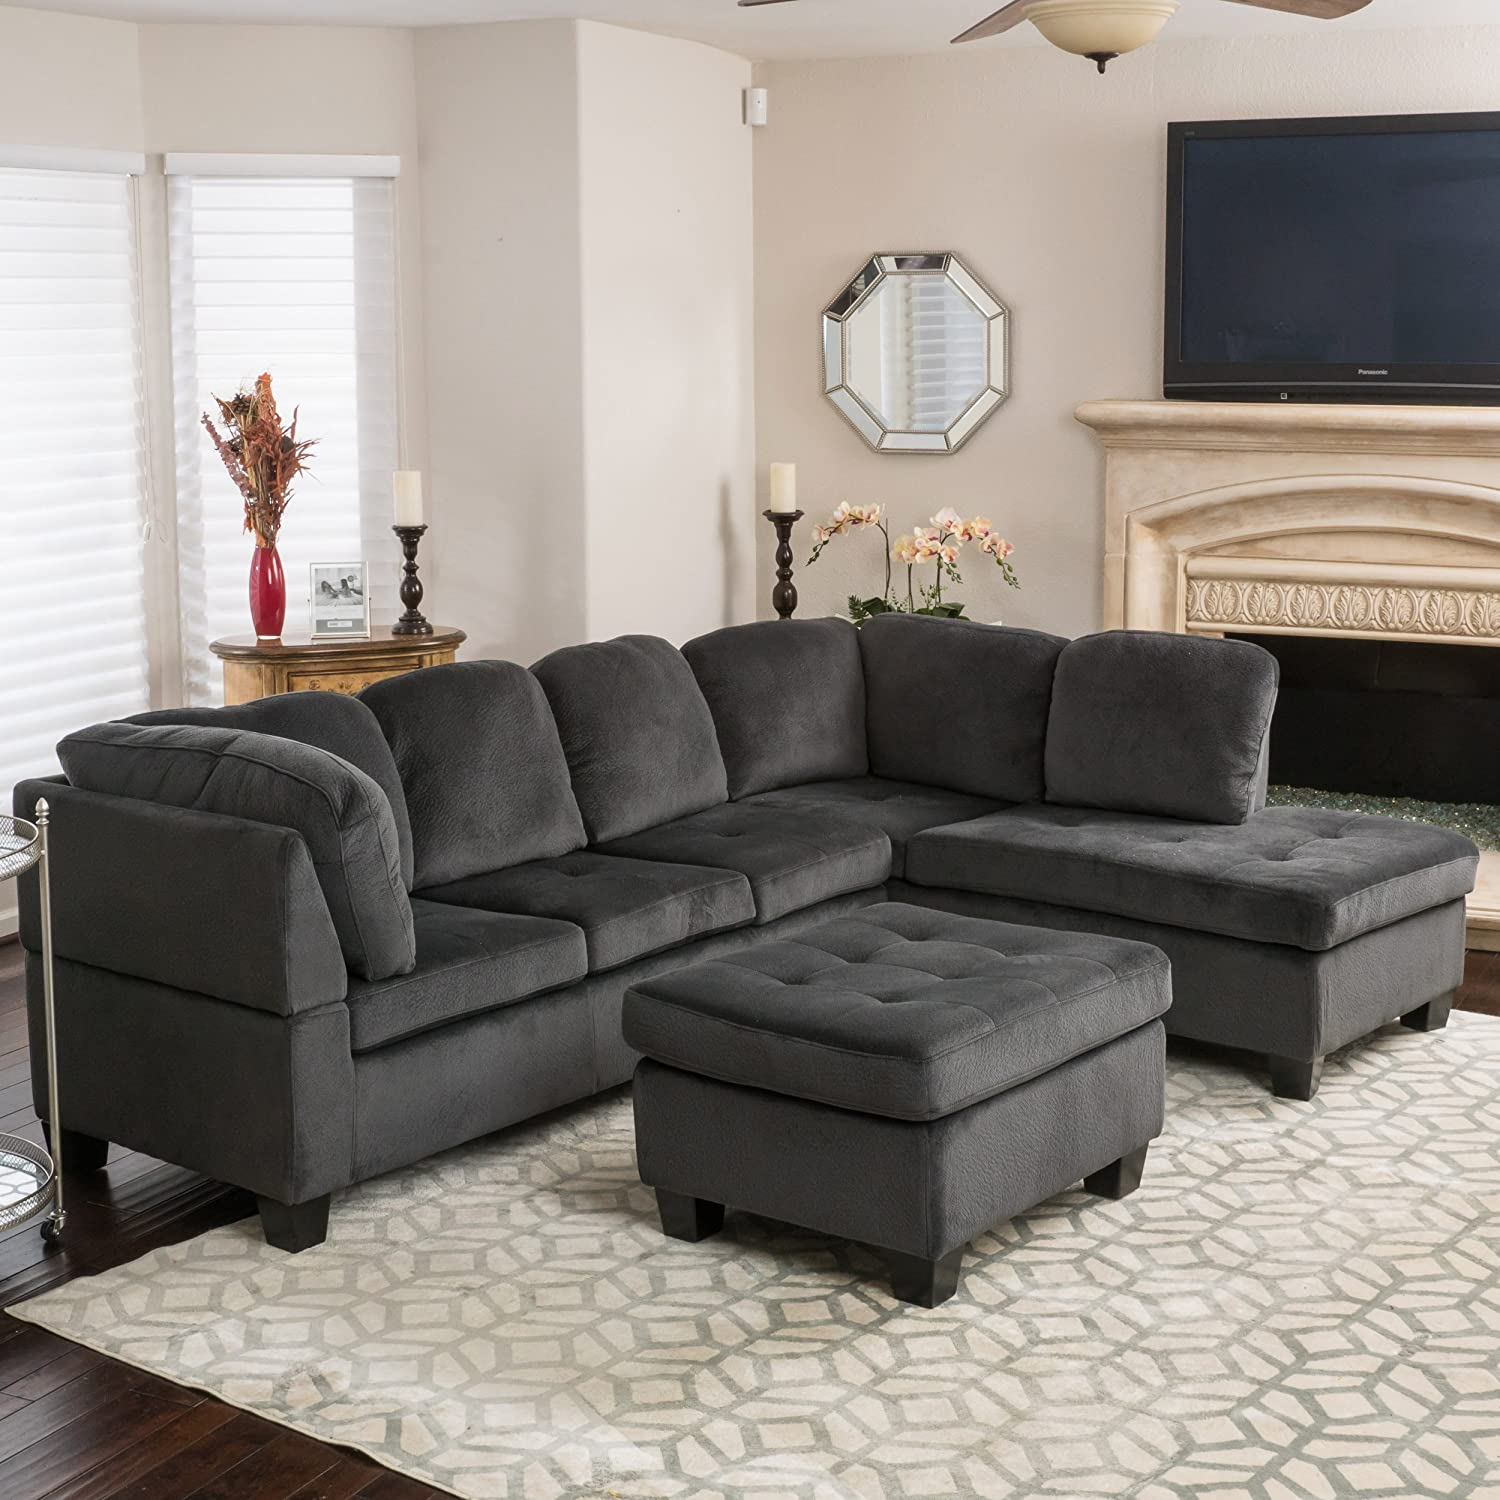 Amazon.com: Gotham 3 Piece Charcoal Fabric Sectional Sofa Set: Kitchen U0026  Dining Part 91